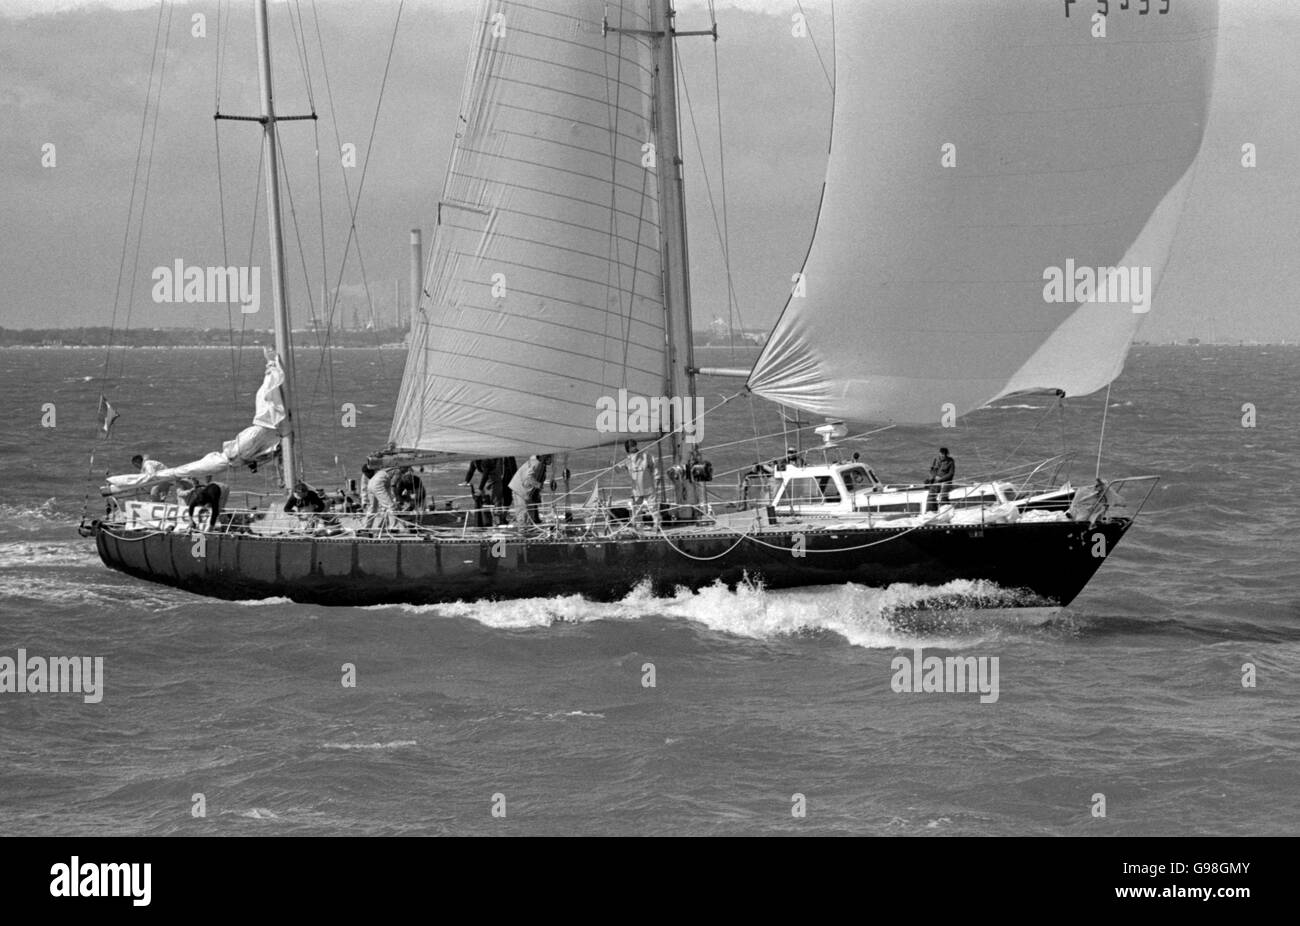 AJAXNETPHOTO. 1978. SOLENT, ENGLAND. - WHITBREAD RACE 1978 - FRENCH YACHT PEN DUICK VI RACING TO THE FINISH LINE - Stock Image